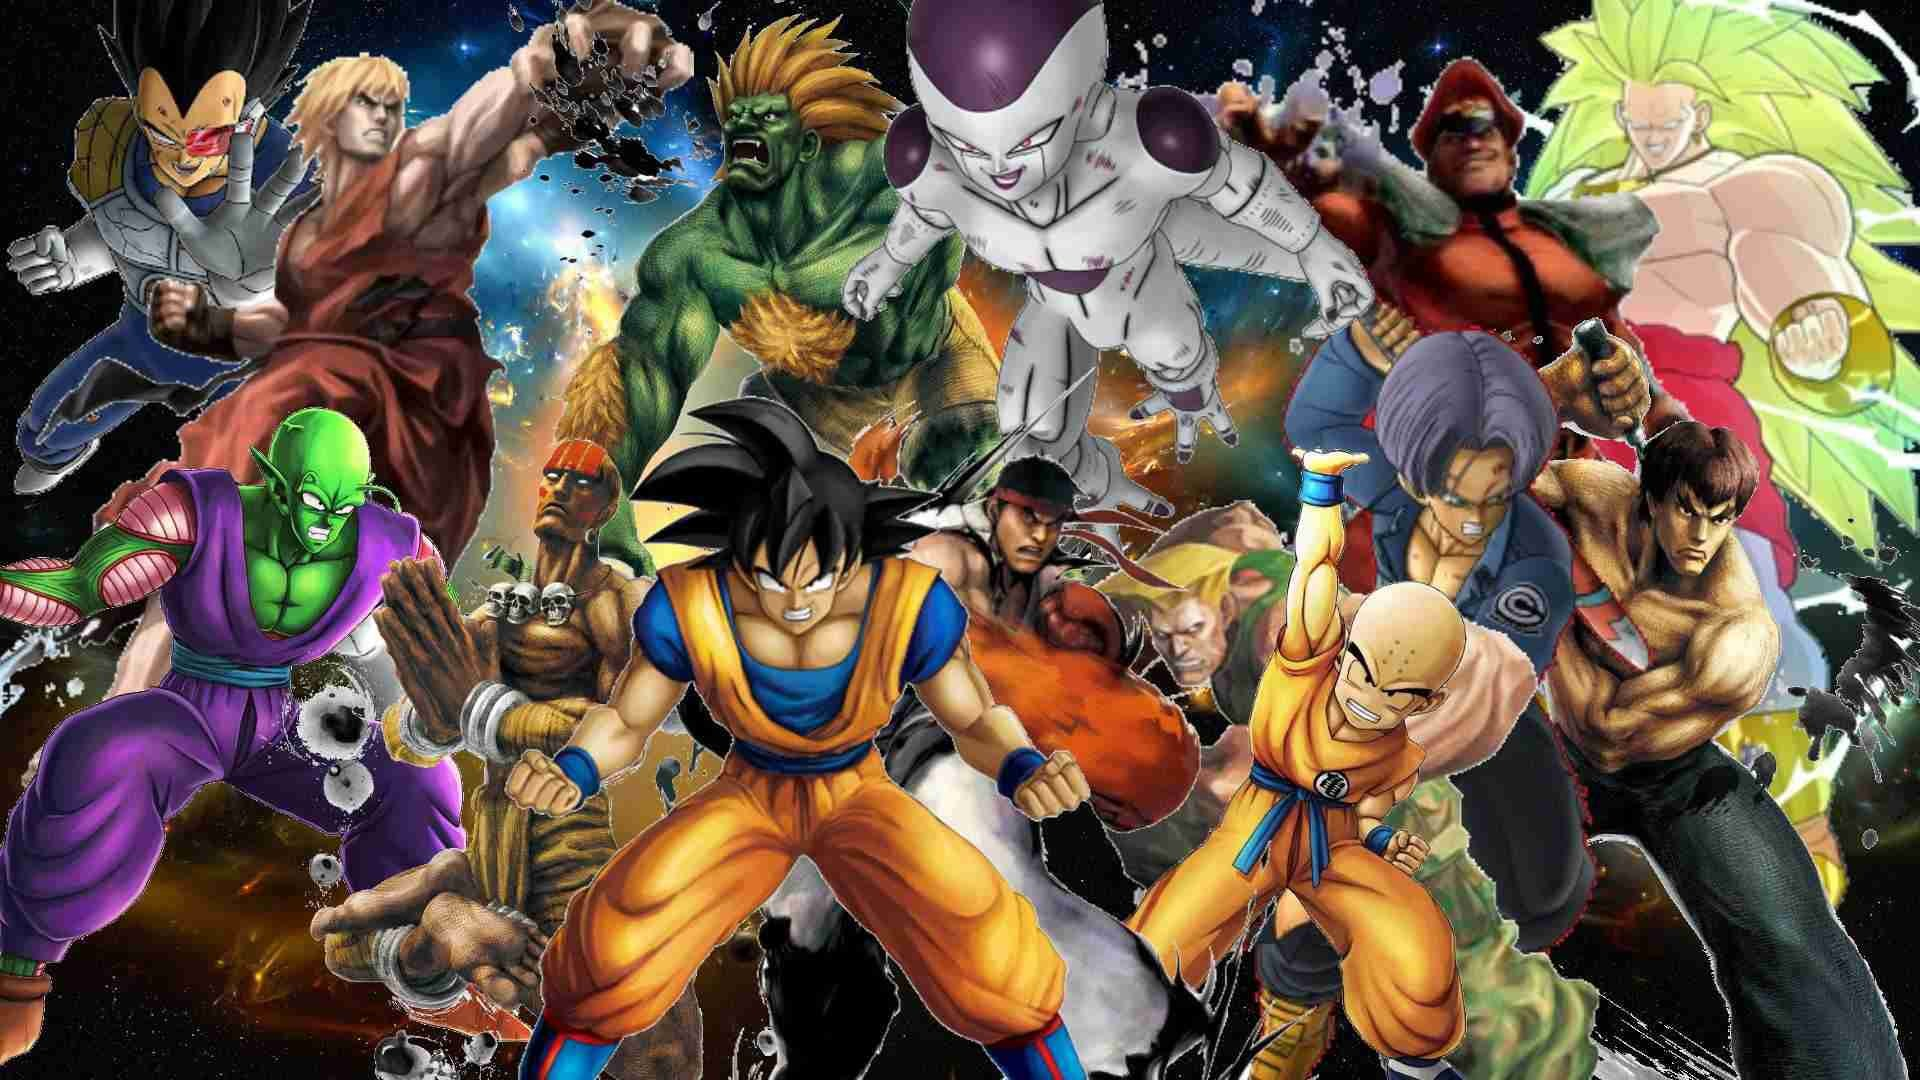 Amazing Wallpaper High Resolution Dragon Ball Z - 474164  Perfect Image Reference_634679.jpg